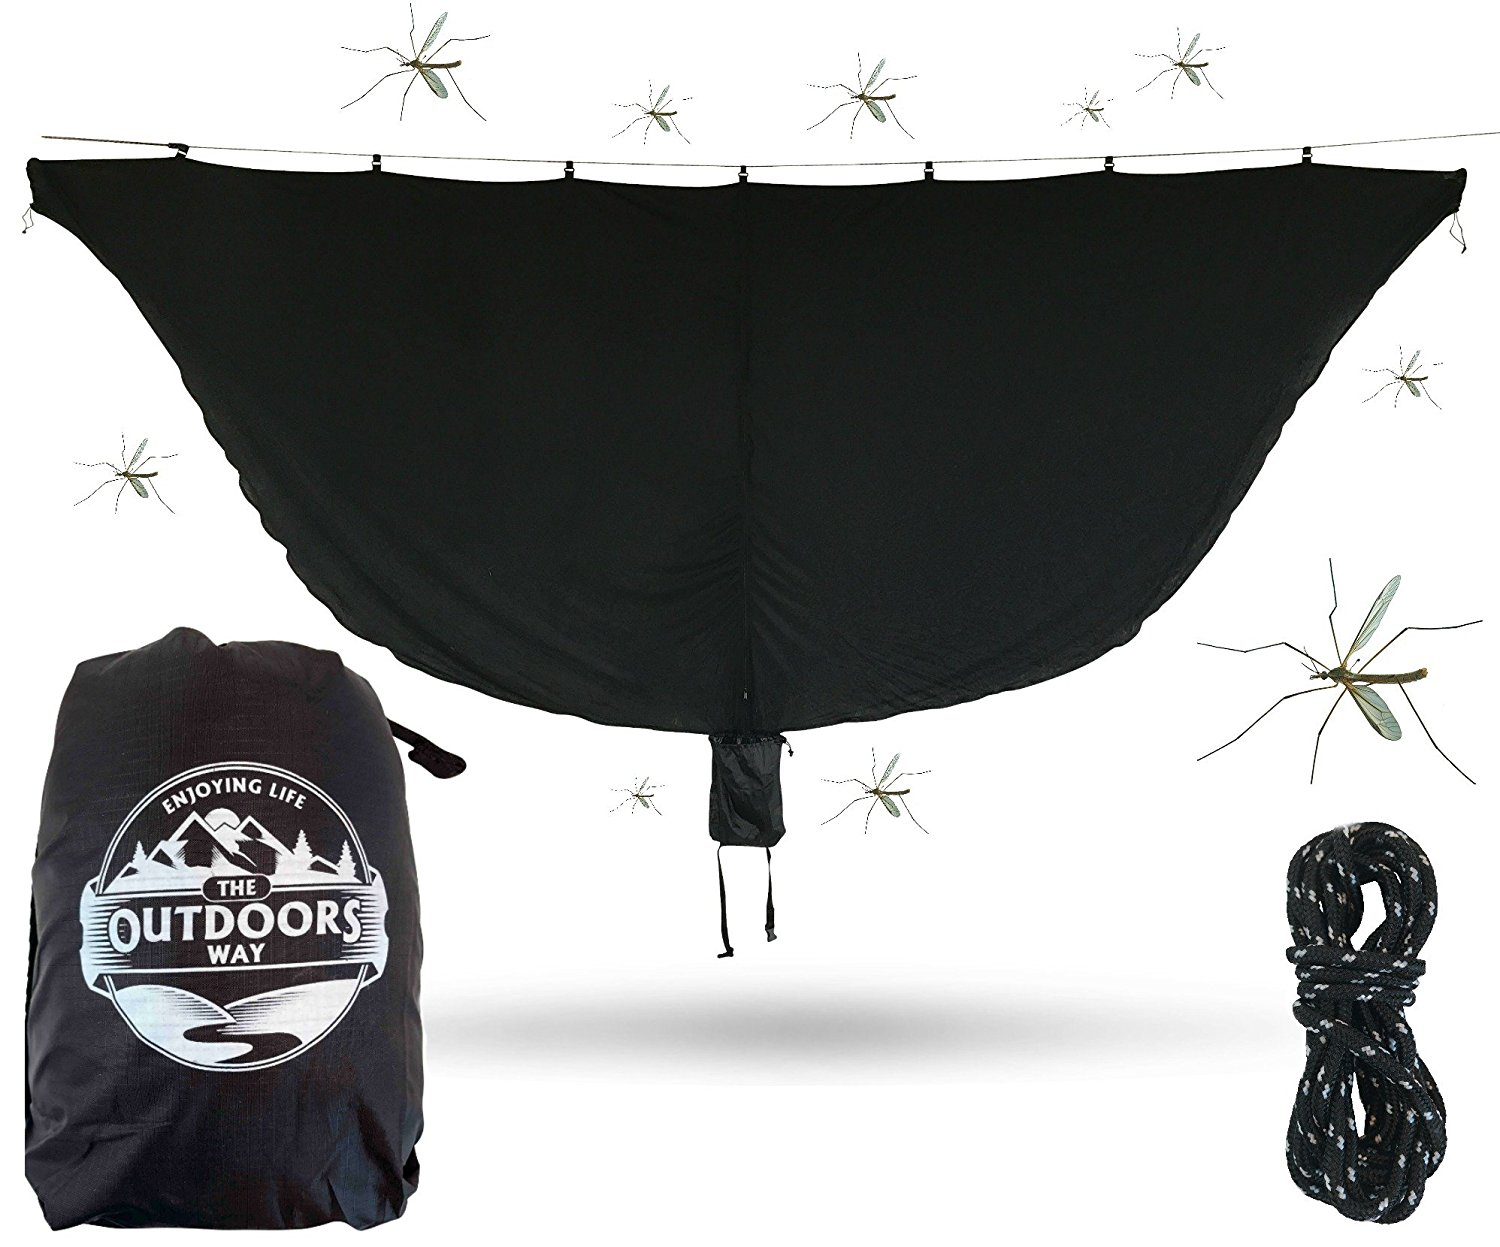 Hammock Mosquito Net From The Outdoors Way